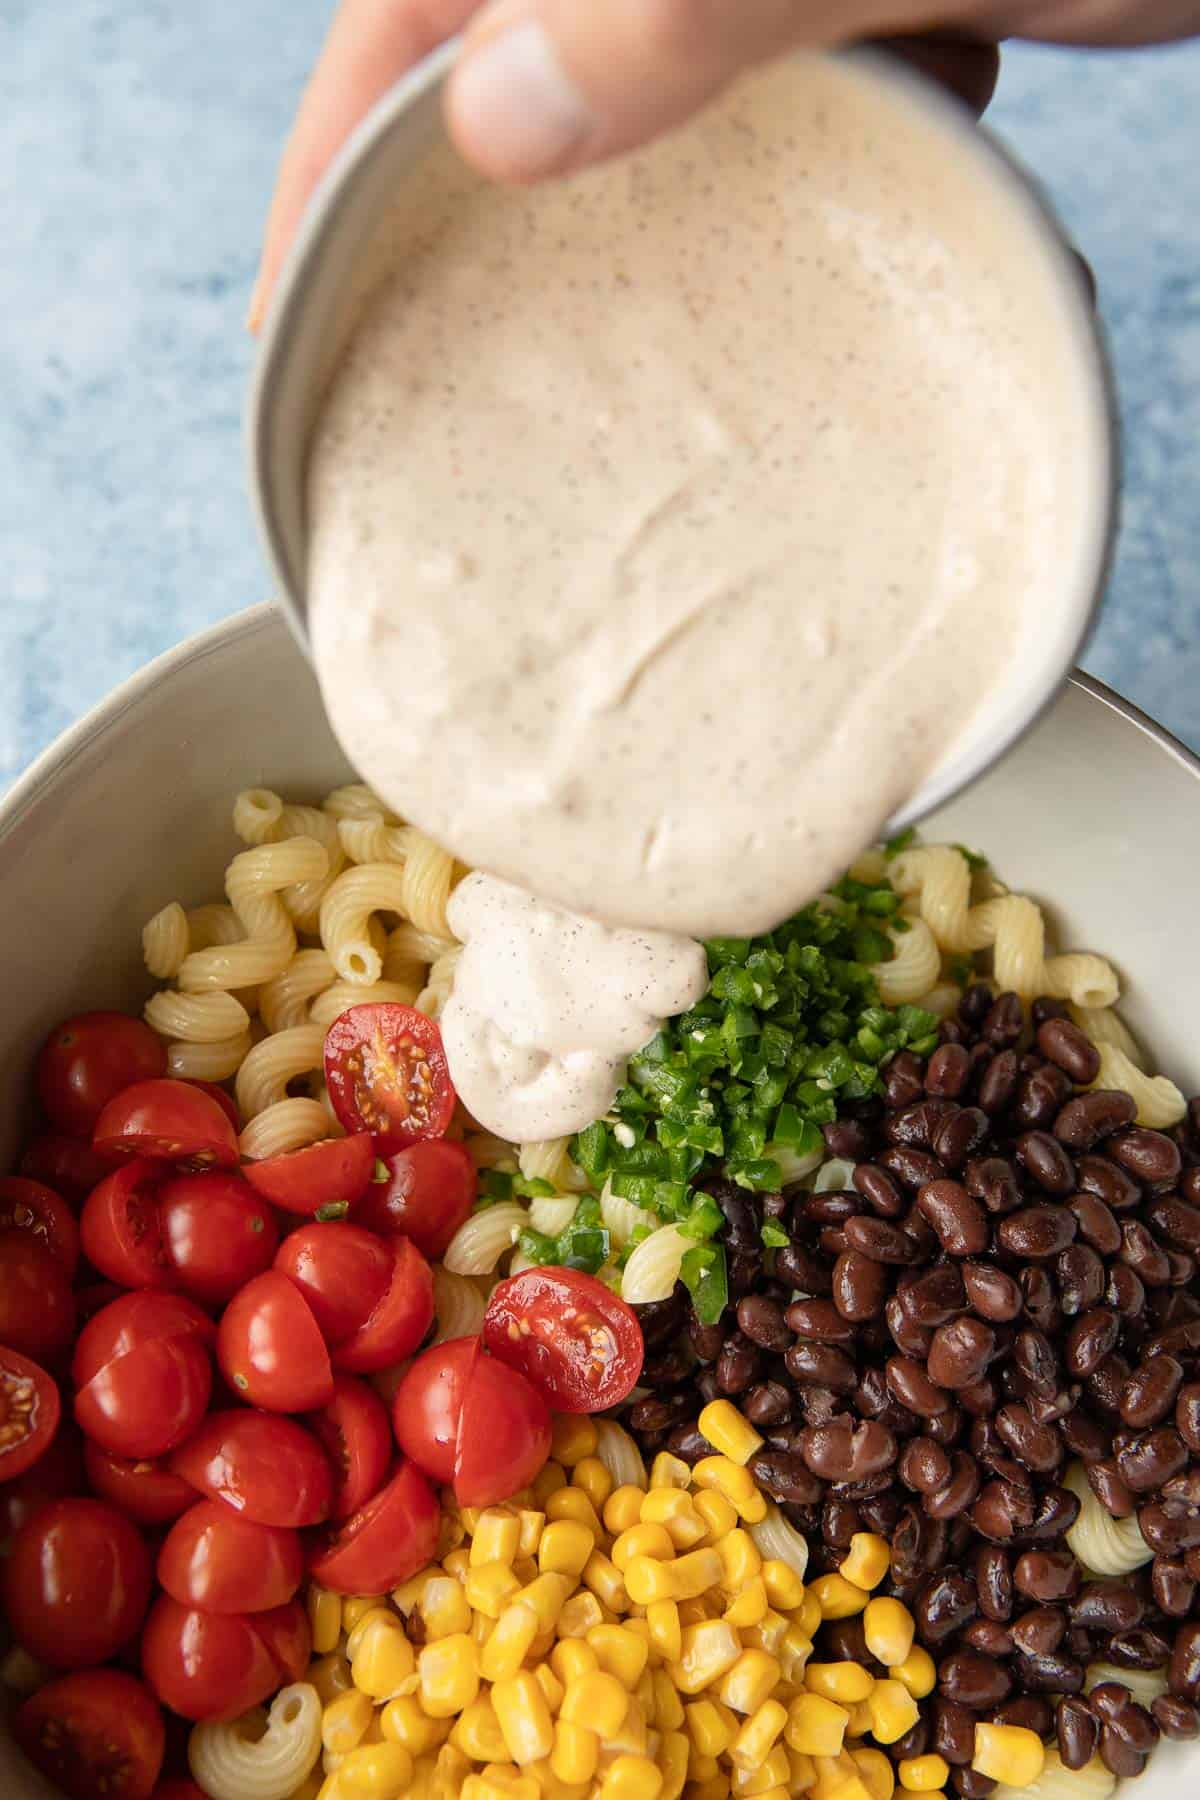 pouring a creamy dressing into a pasta salad bowl